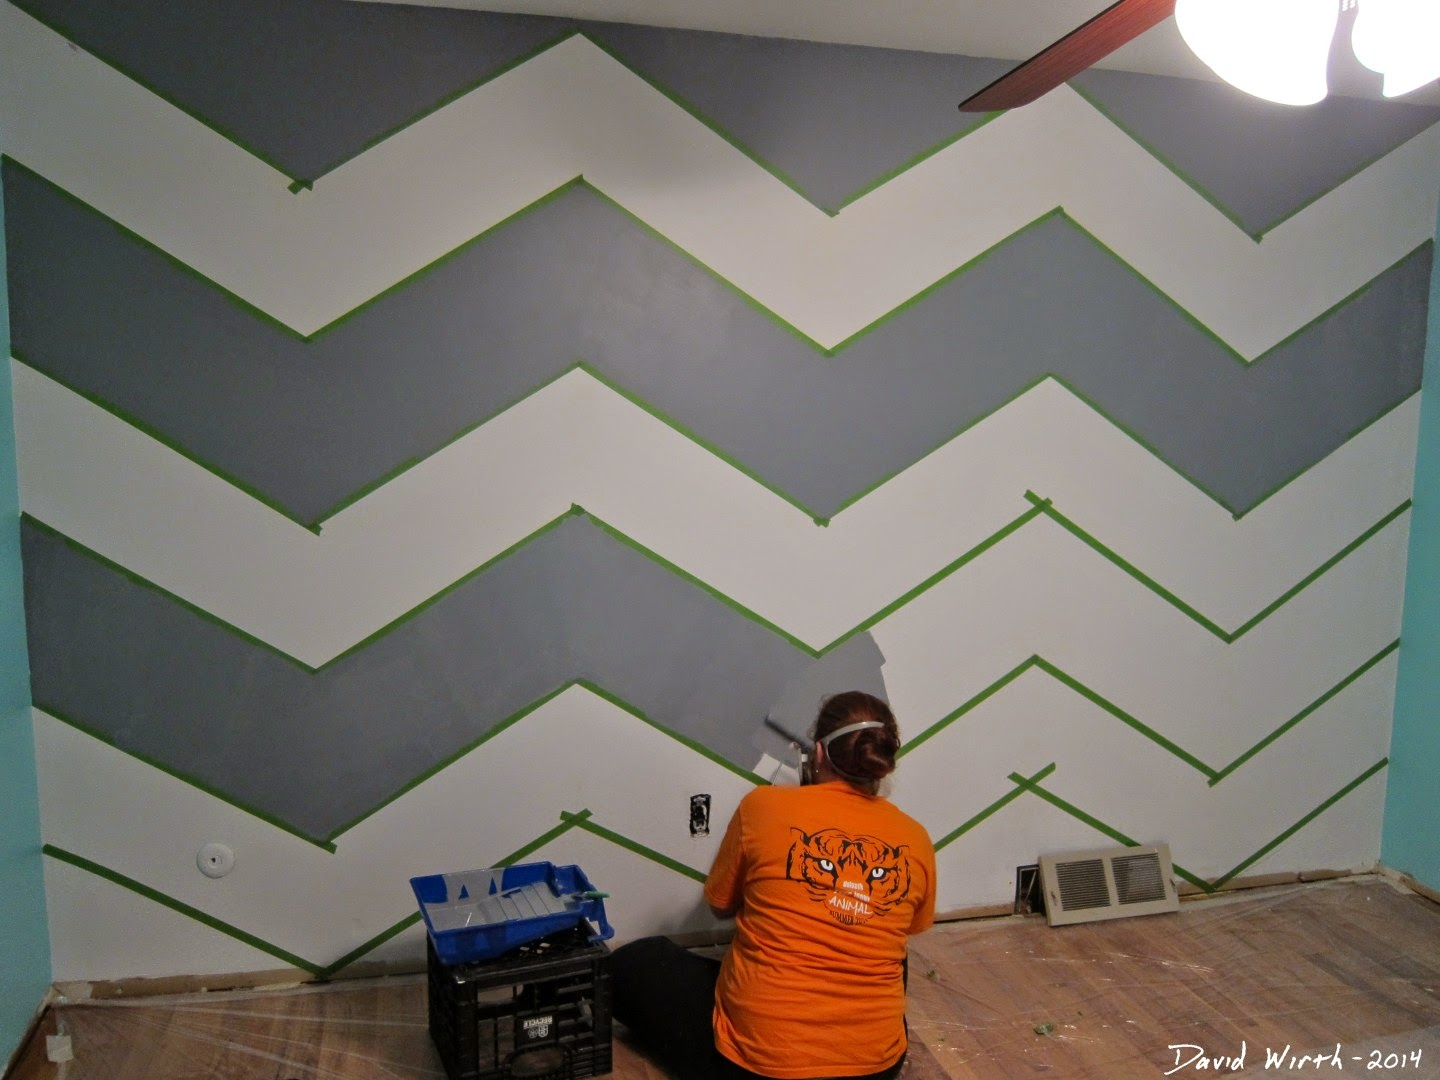 Wall paint design ideas with tape interior design emejing paint designs on walls with tape ideas ideas decorating amipublicfo Choice Image